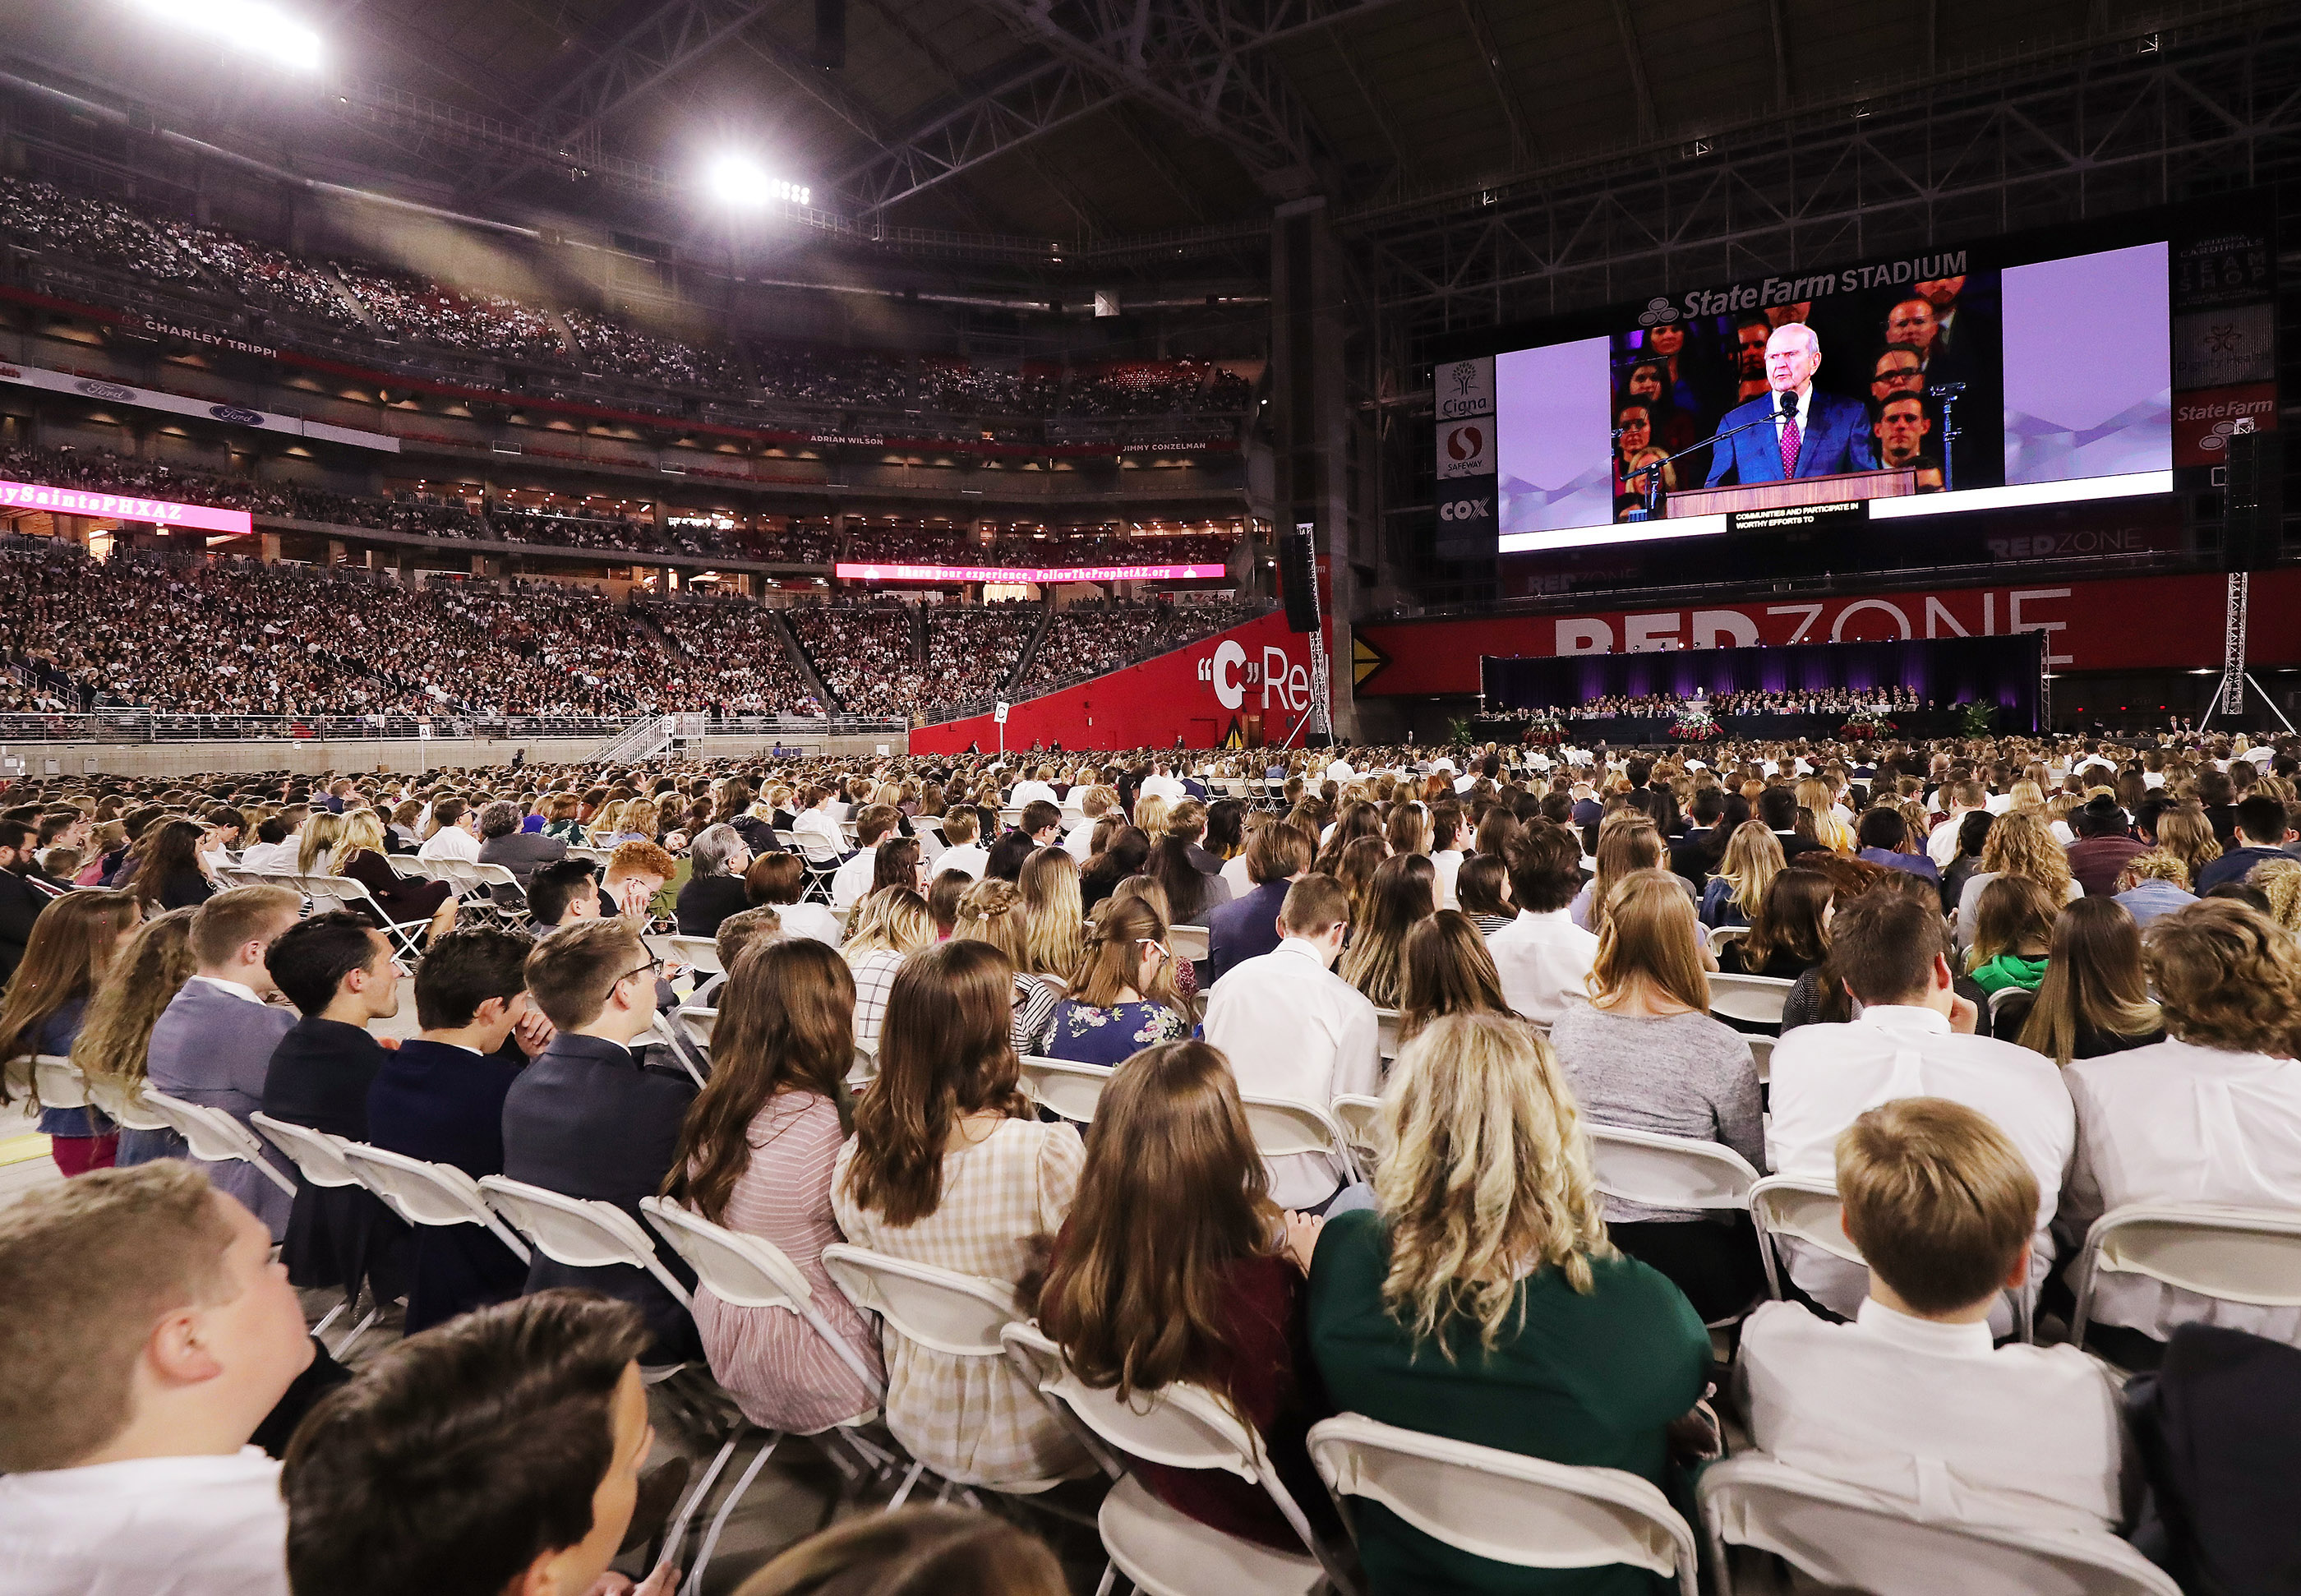 President Russell M. Nelson of The Church of Jesus Christ of Latter-day Saints speaks during a devotional at the State Farm Stadium in Phoenix on Sunday, Feb. 10, 2019.